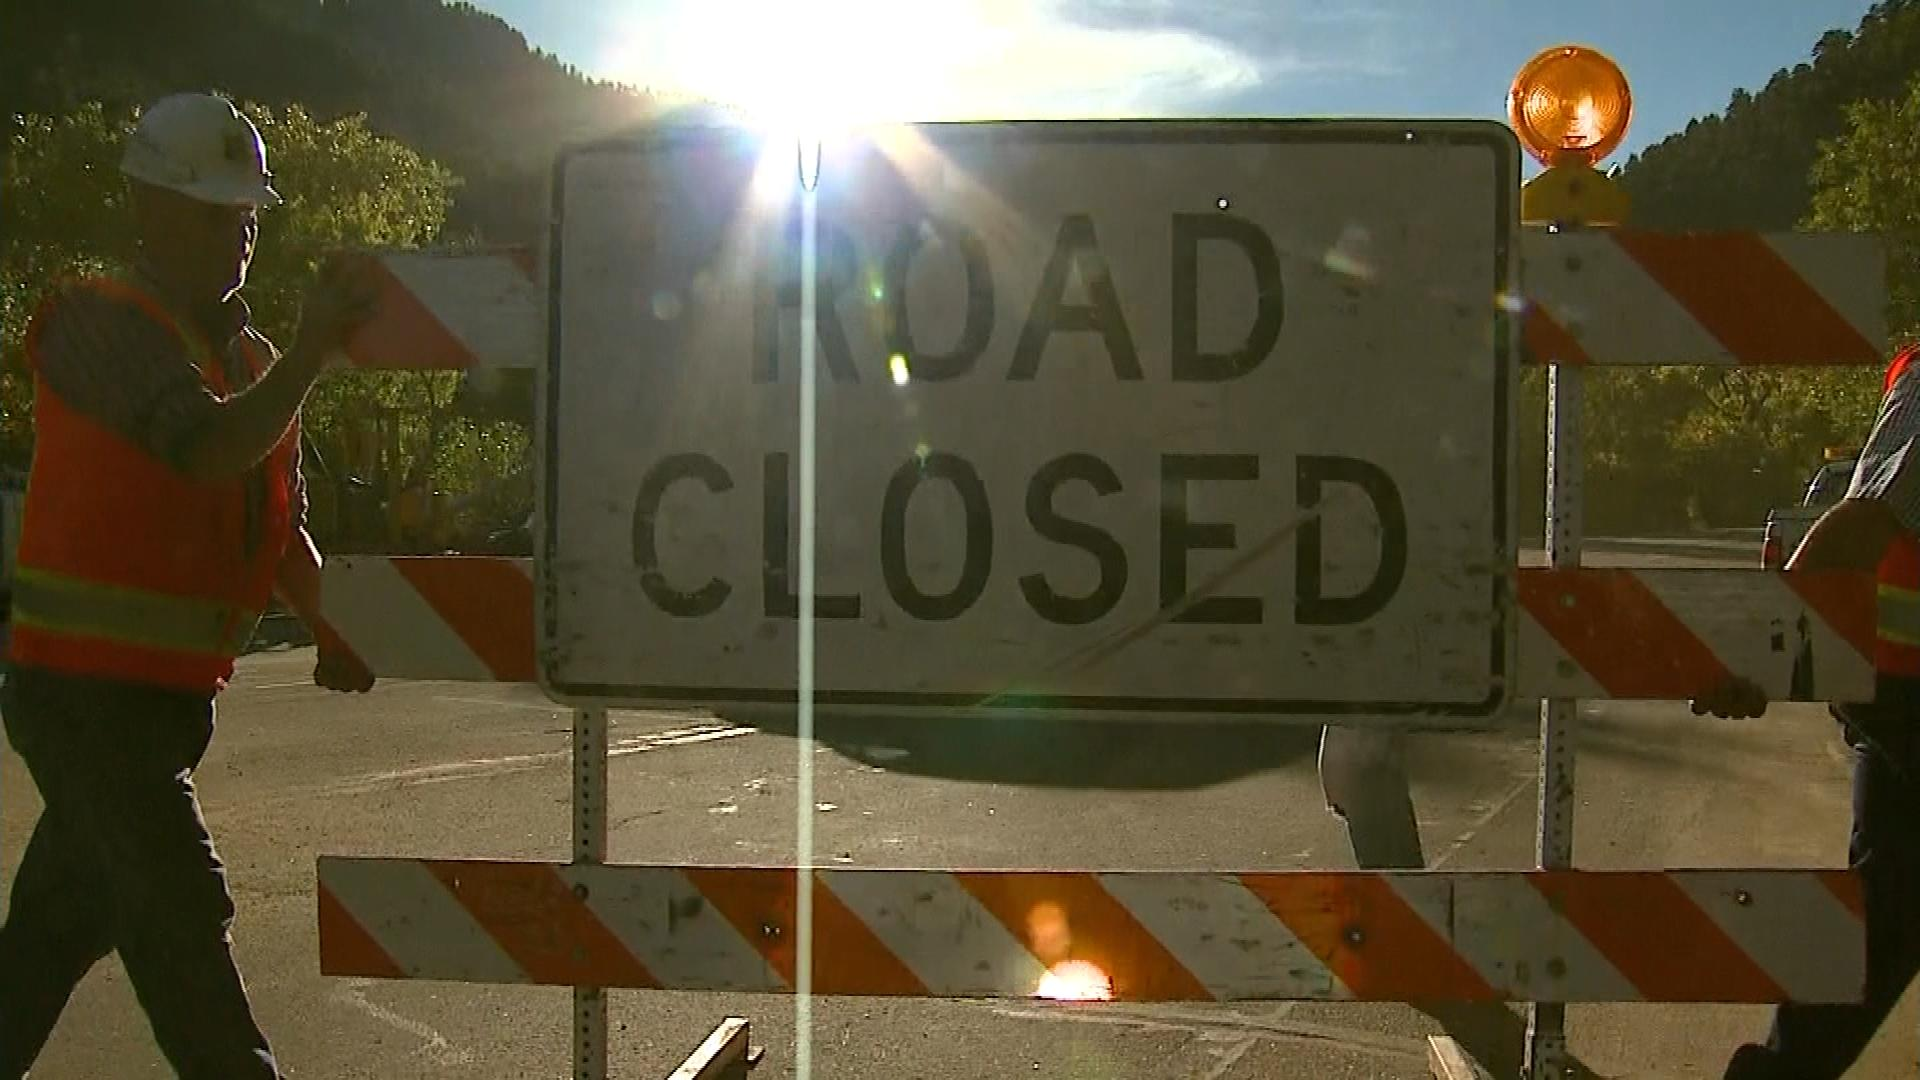 Officials move away the roadblocks on Sunday. (credit: CBS)